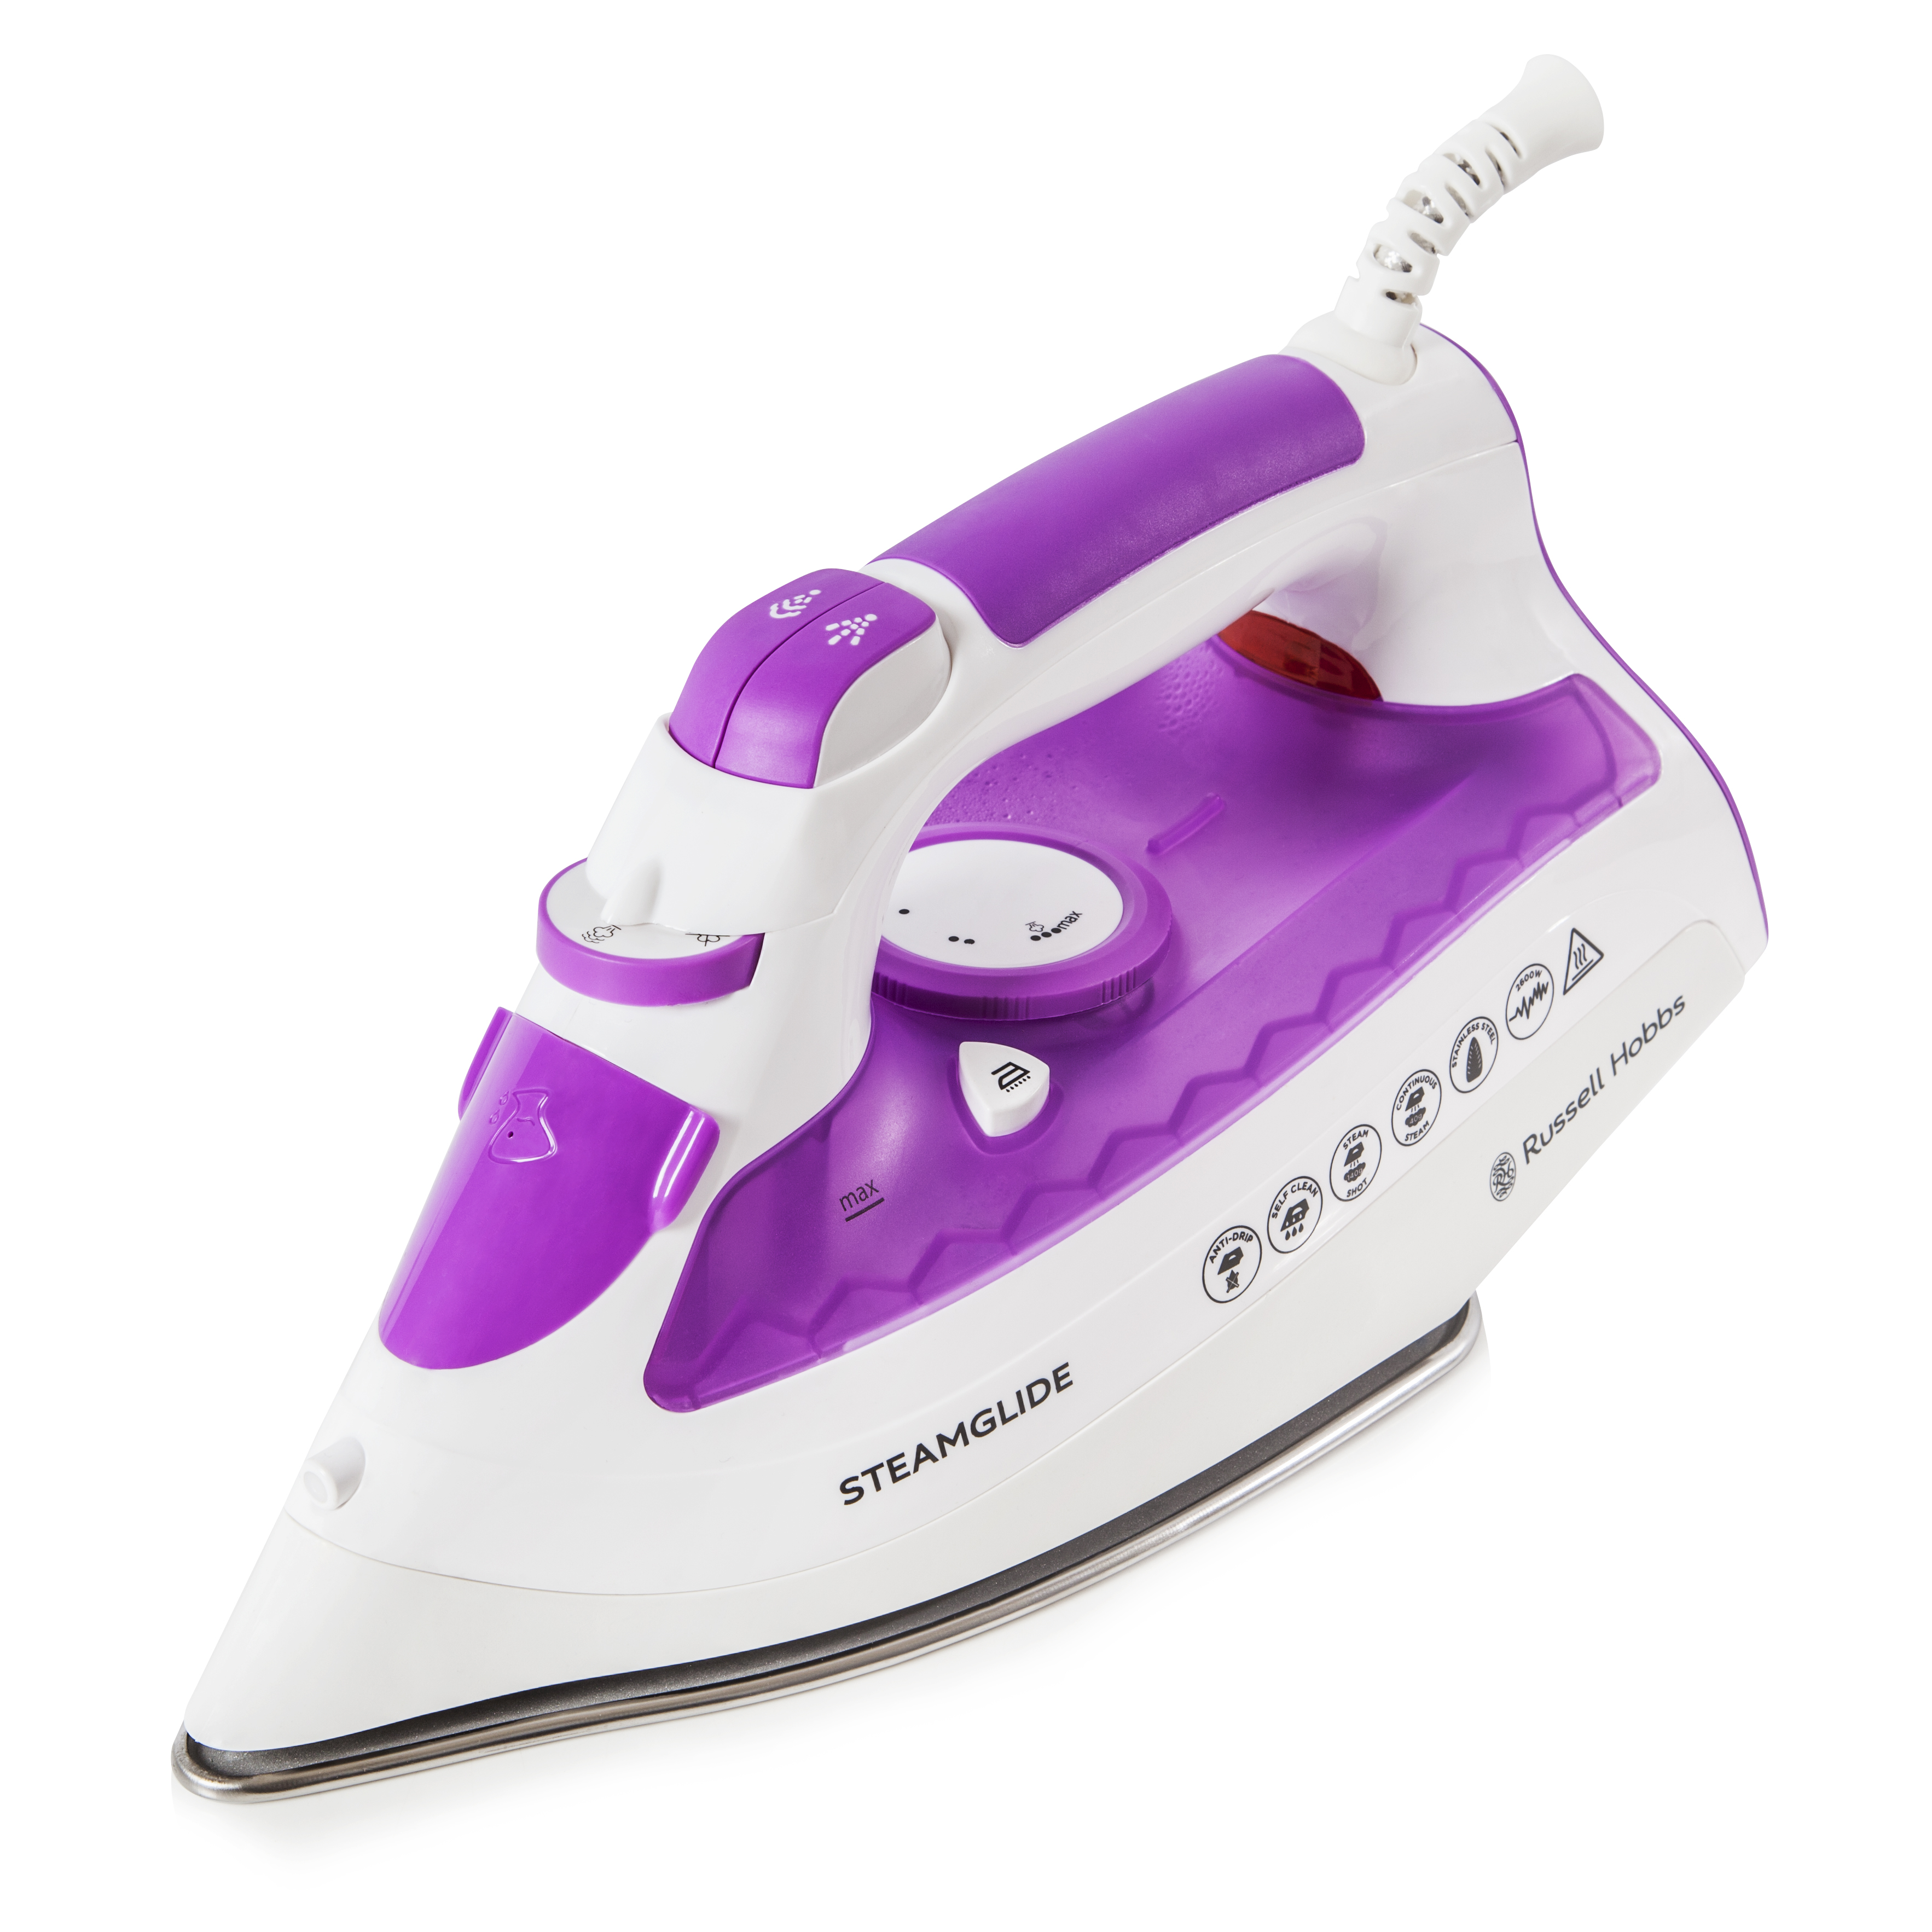 Russell Hobbs Steamglide Iron No Outer No Colour